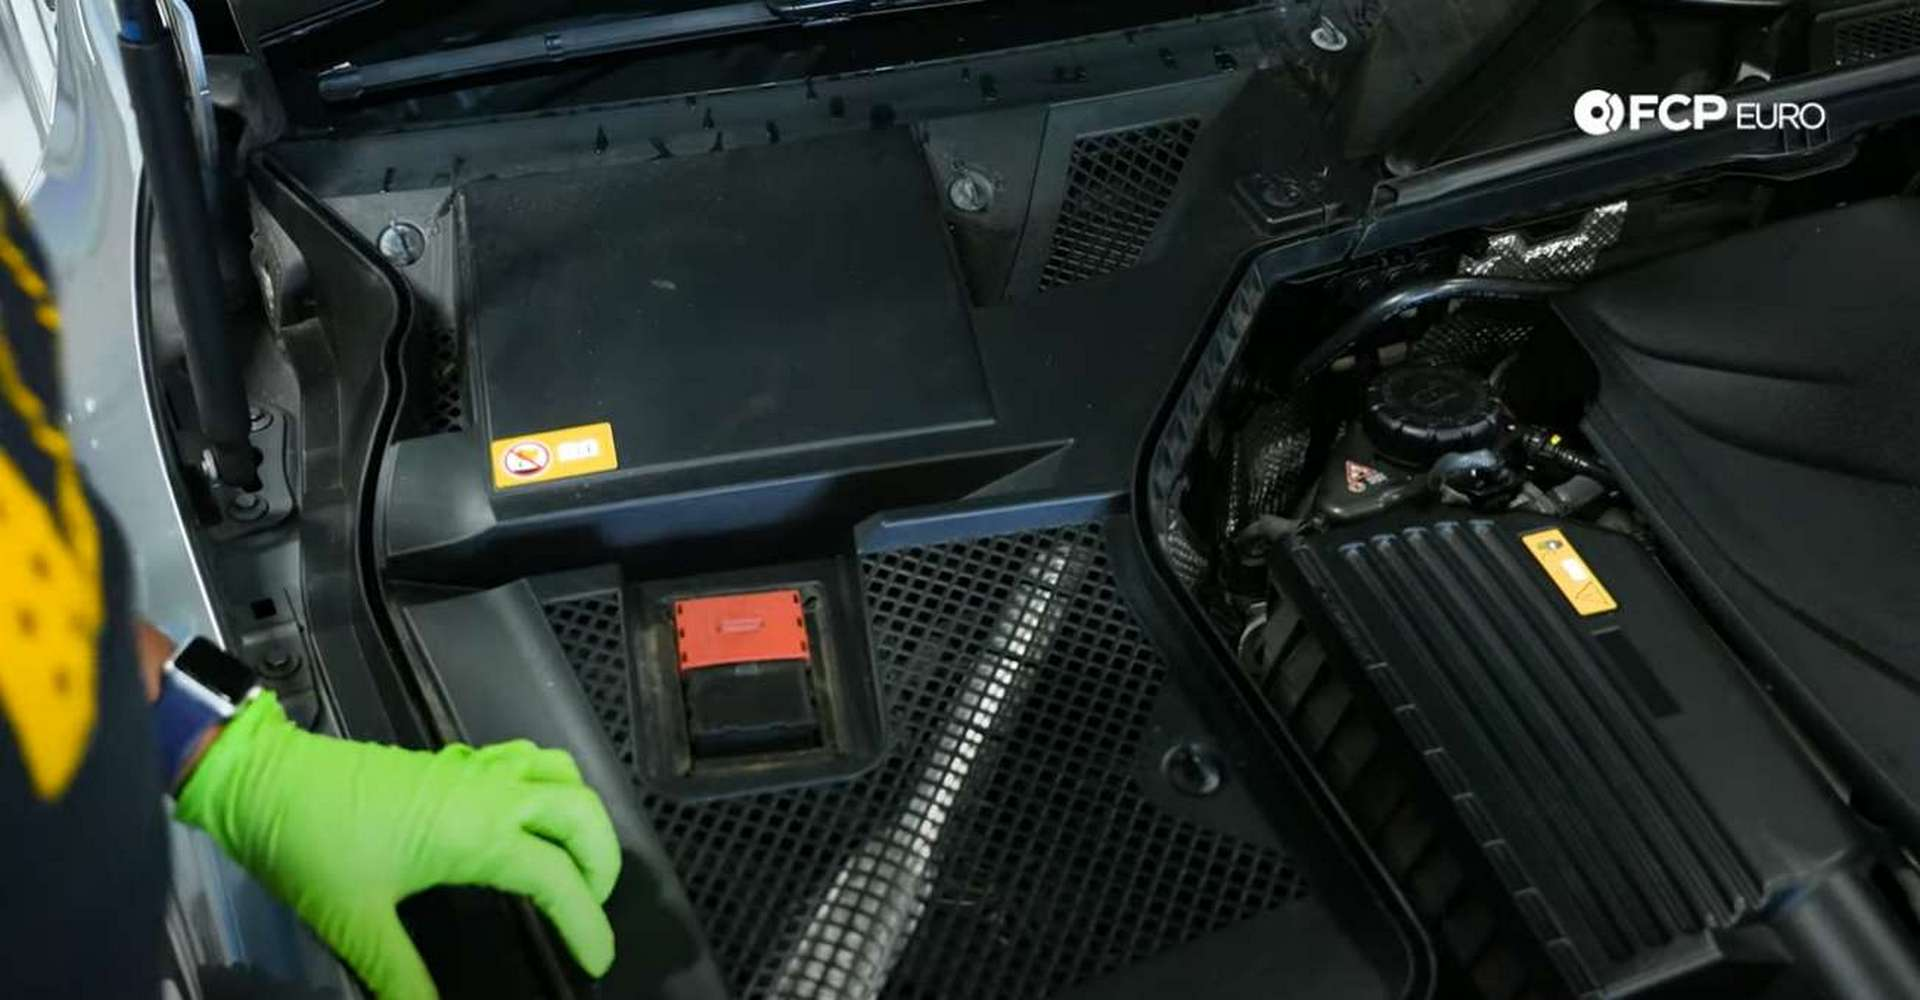 02-DIY-Mercedes-W205-Battery-Replacement_Accessing-Battery